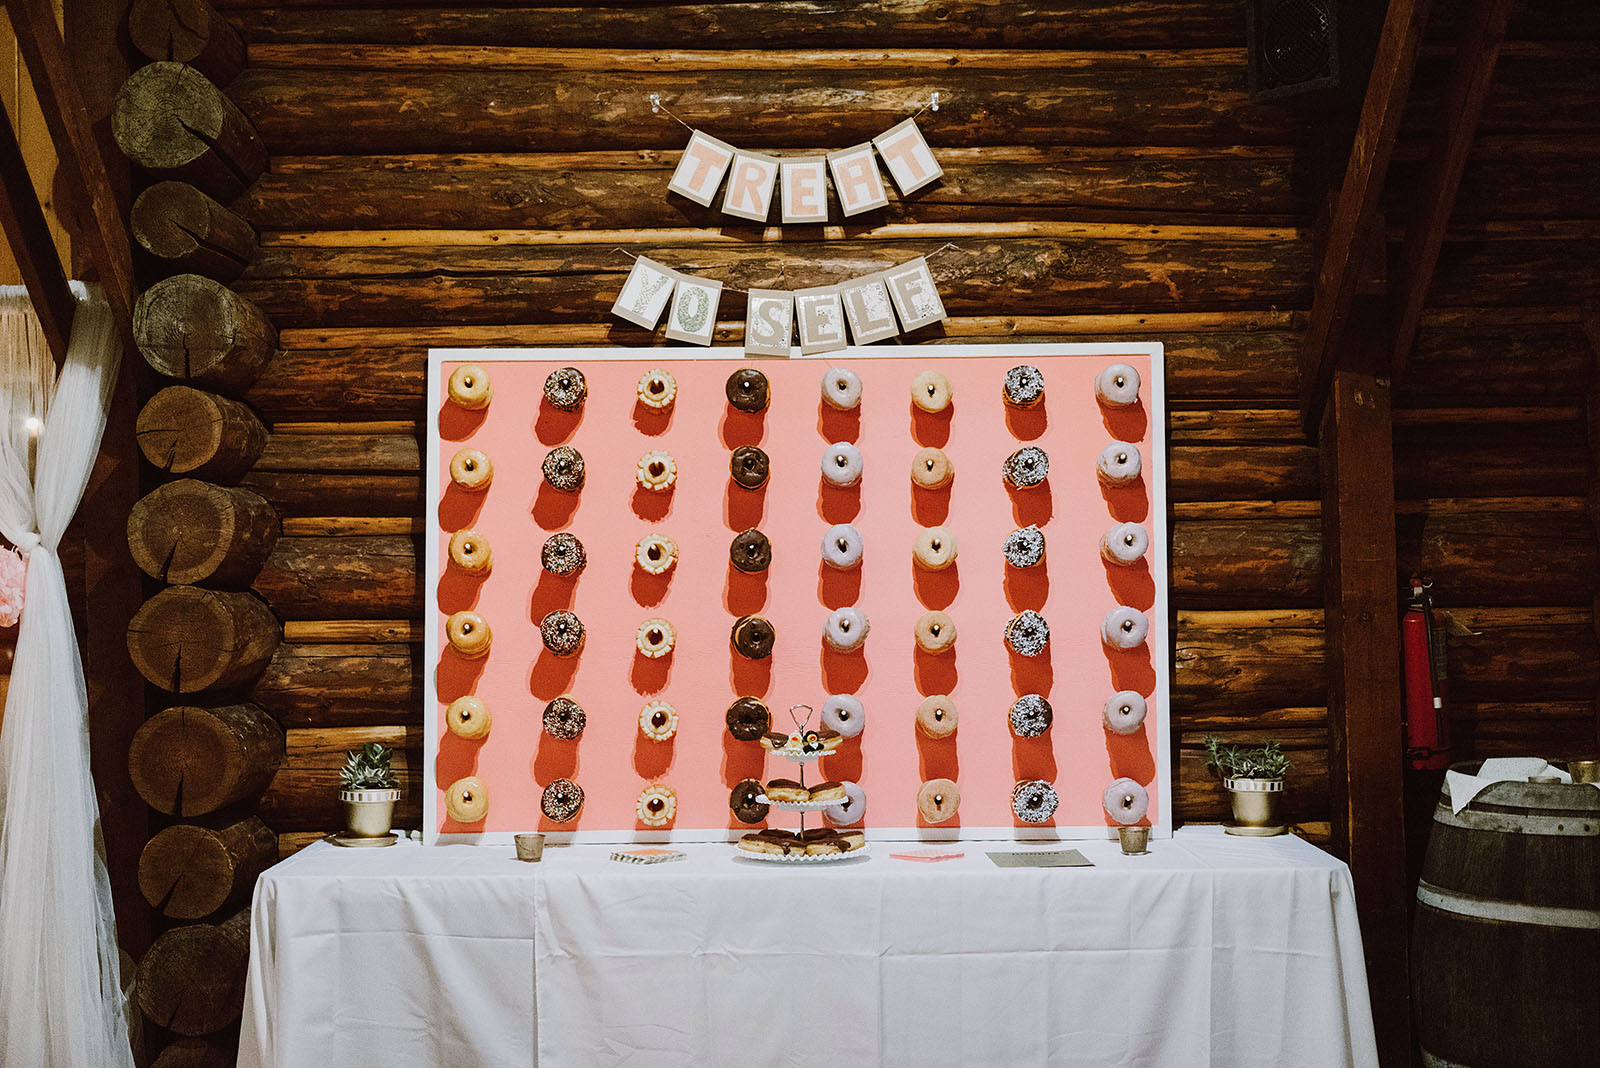 Wall of donuts at a Cedarville Lodge Wedding in Gresham, OR